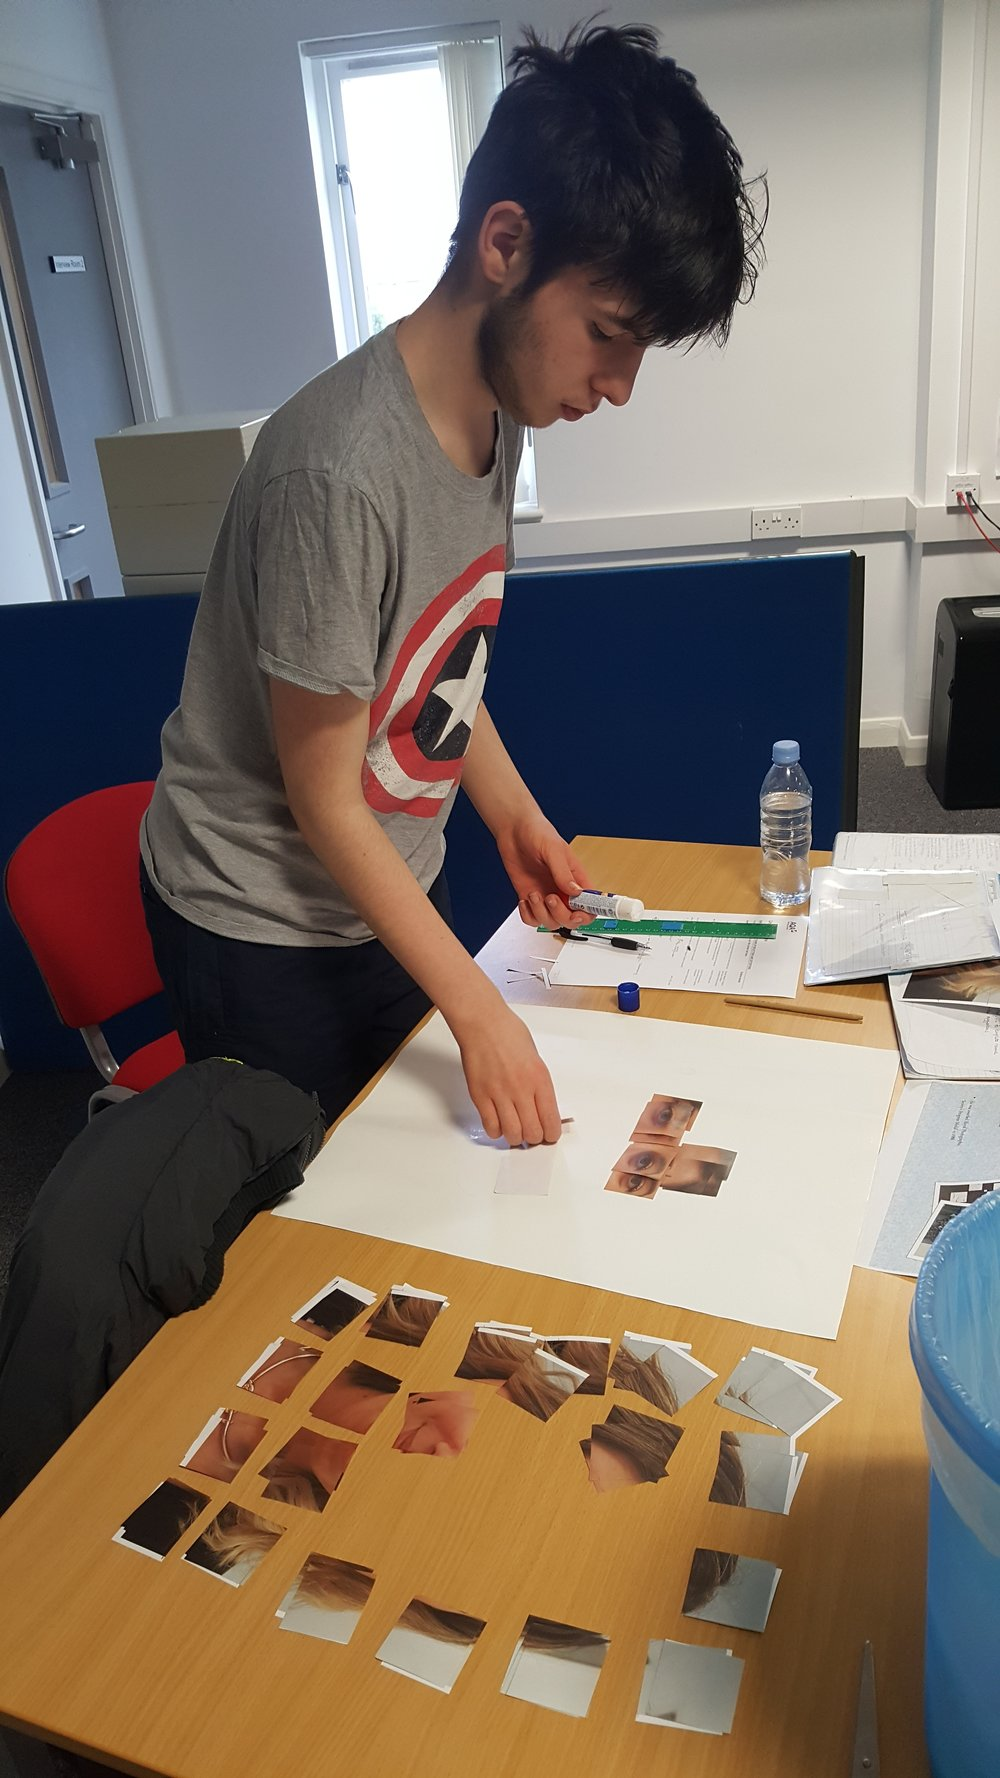 Lee using photography as his motivation - planning his distorted image.